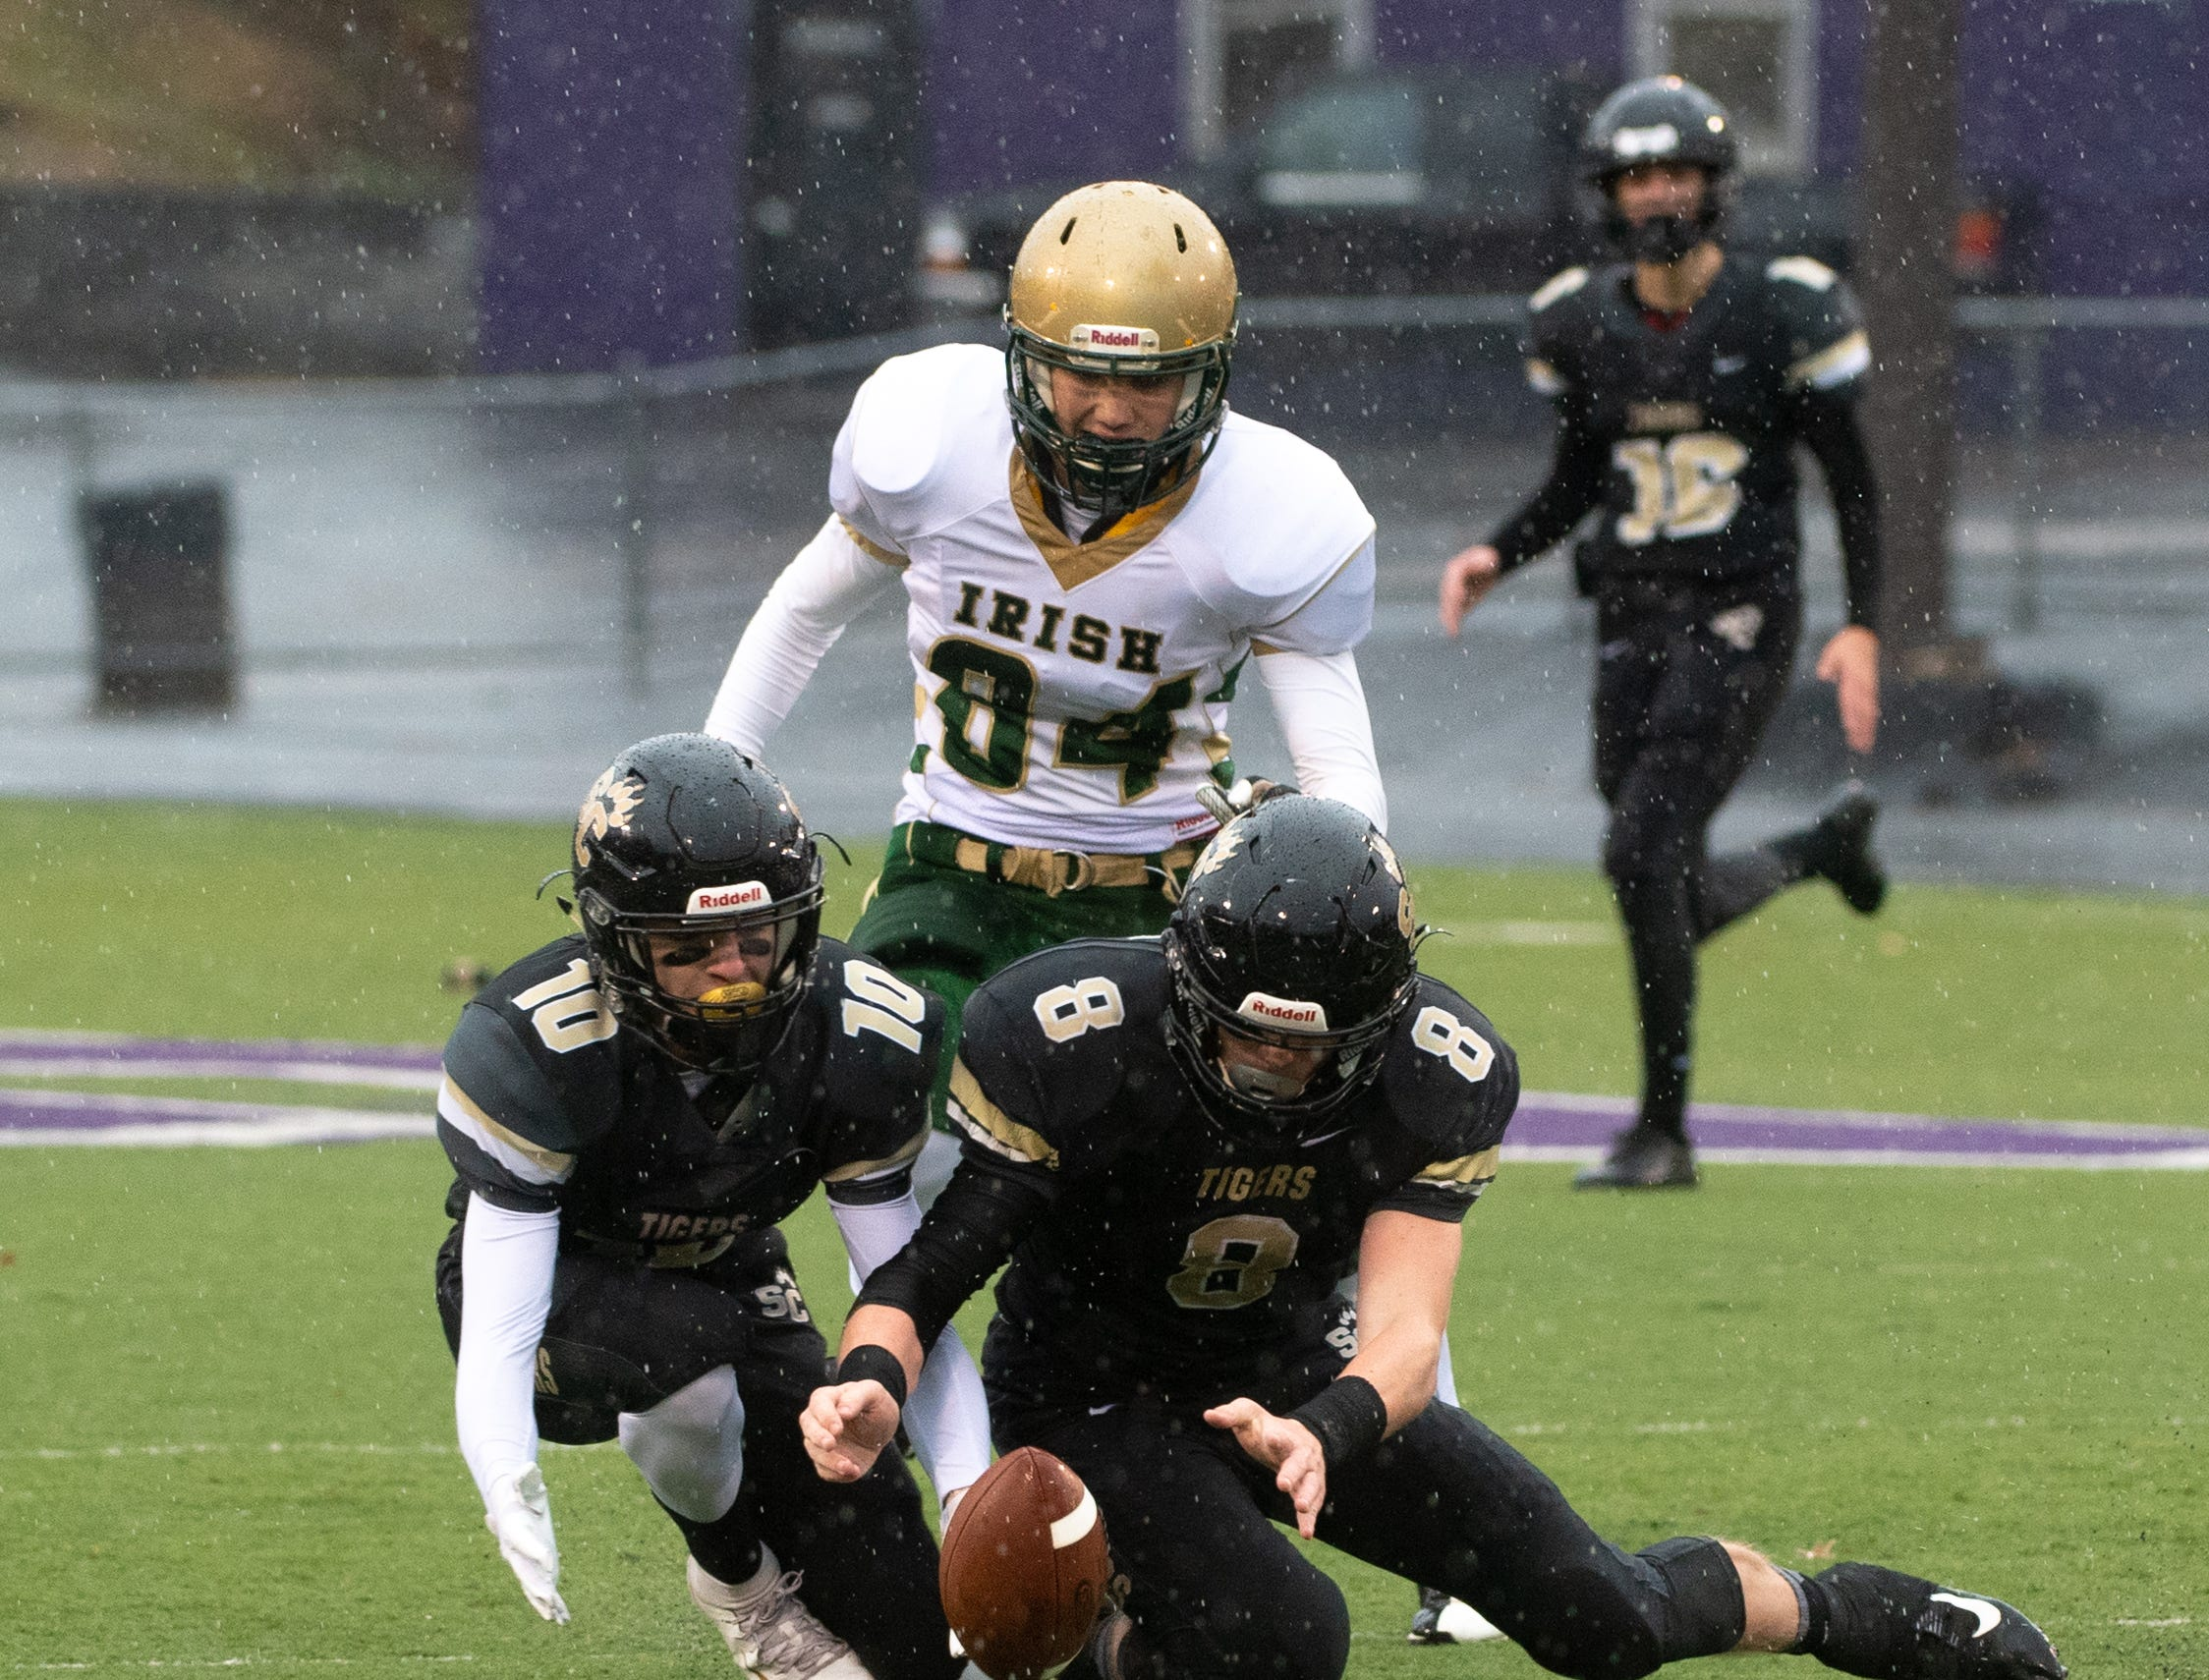 Jacob Davis (10) and Max Tillett (8) look to recover the fumble during the state quarter-finals game between York Catholic and Southern Columbia at Shamokin Area High School, November 24, 2018. The Tigers defeated the Irish 56-23.